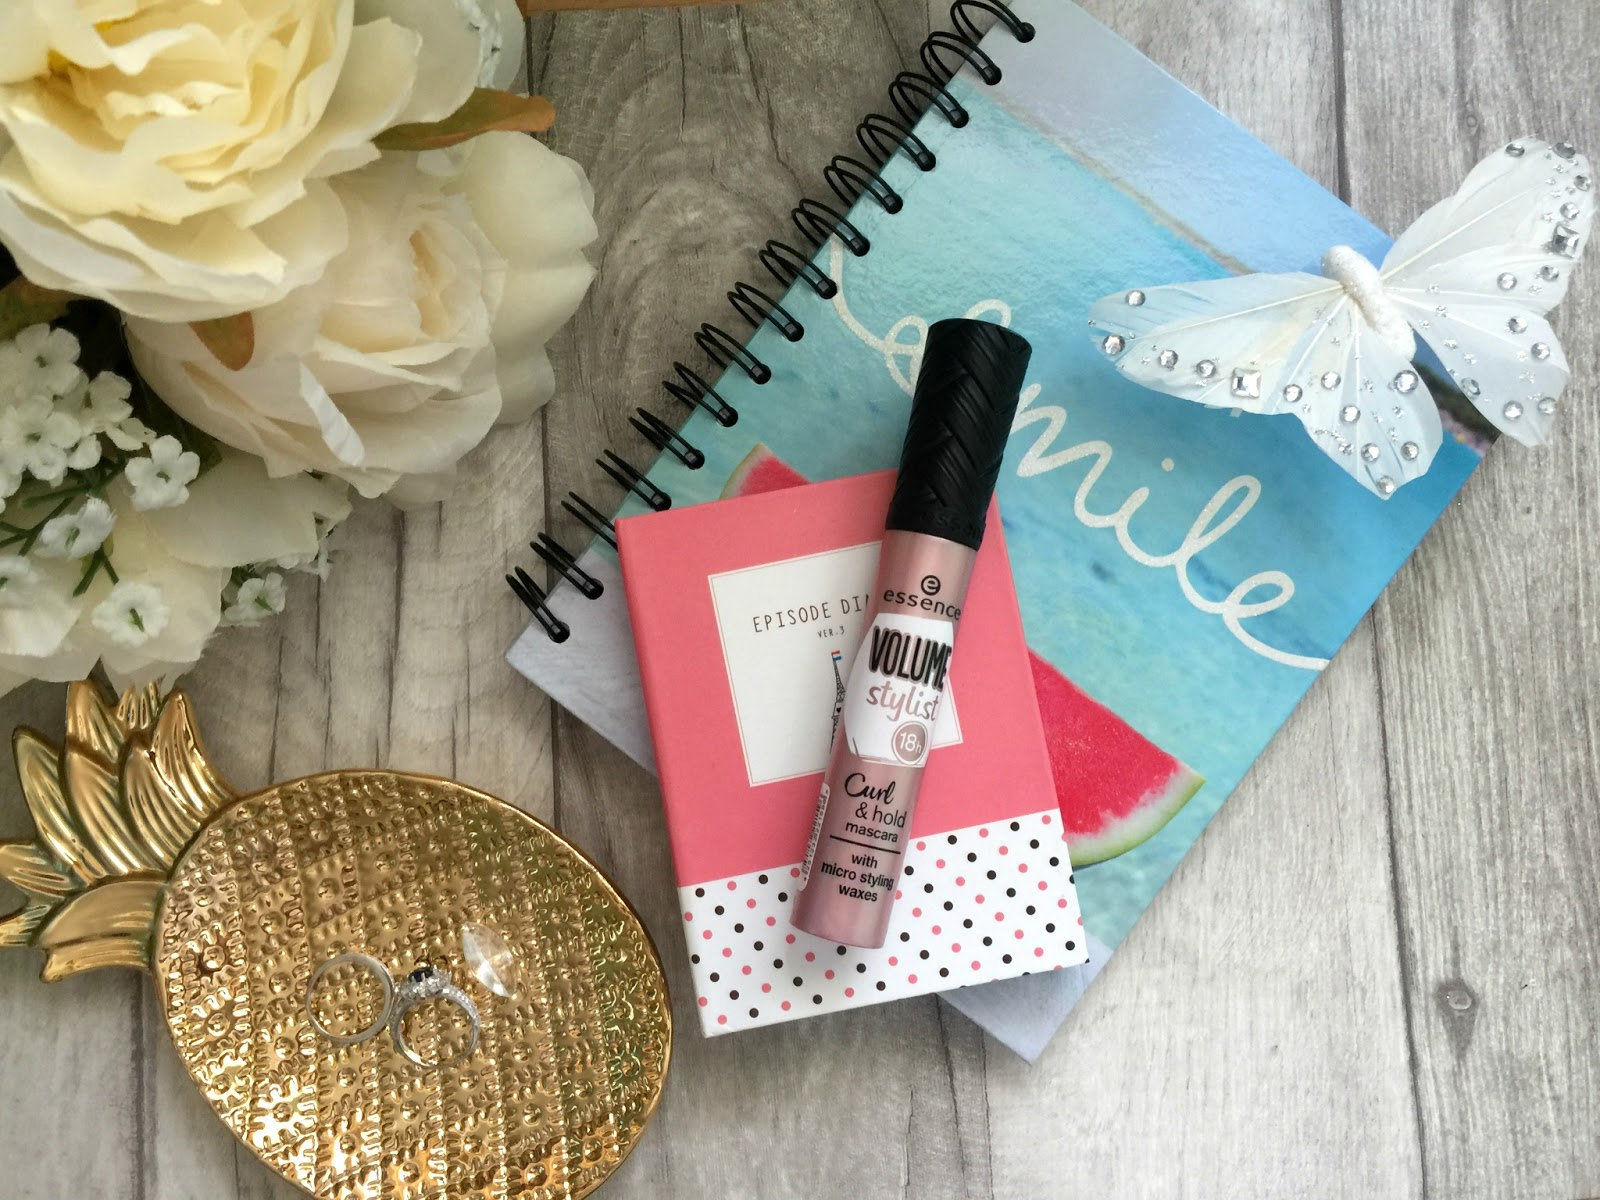 essence volume stylist curl and hold mascara review